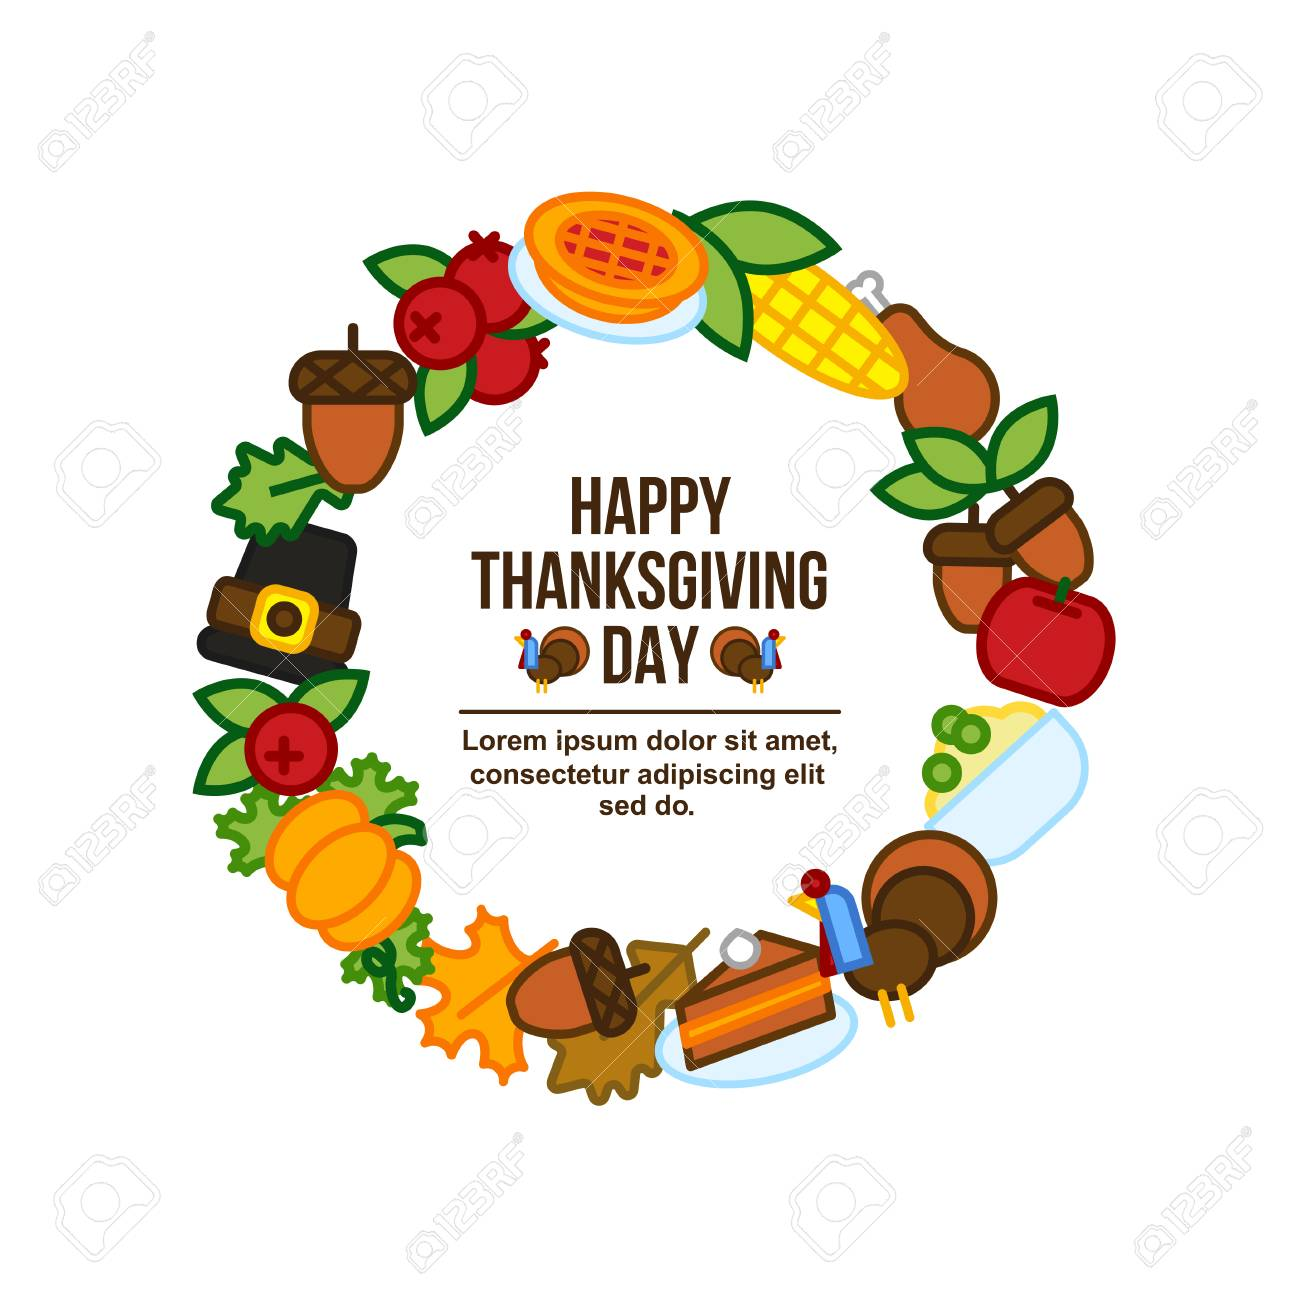 Frame With Abstract Thanksgiving Day Icon Holiday Symbols Royalty